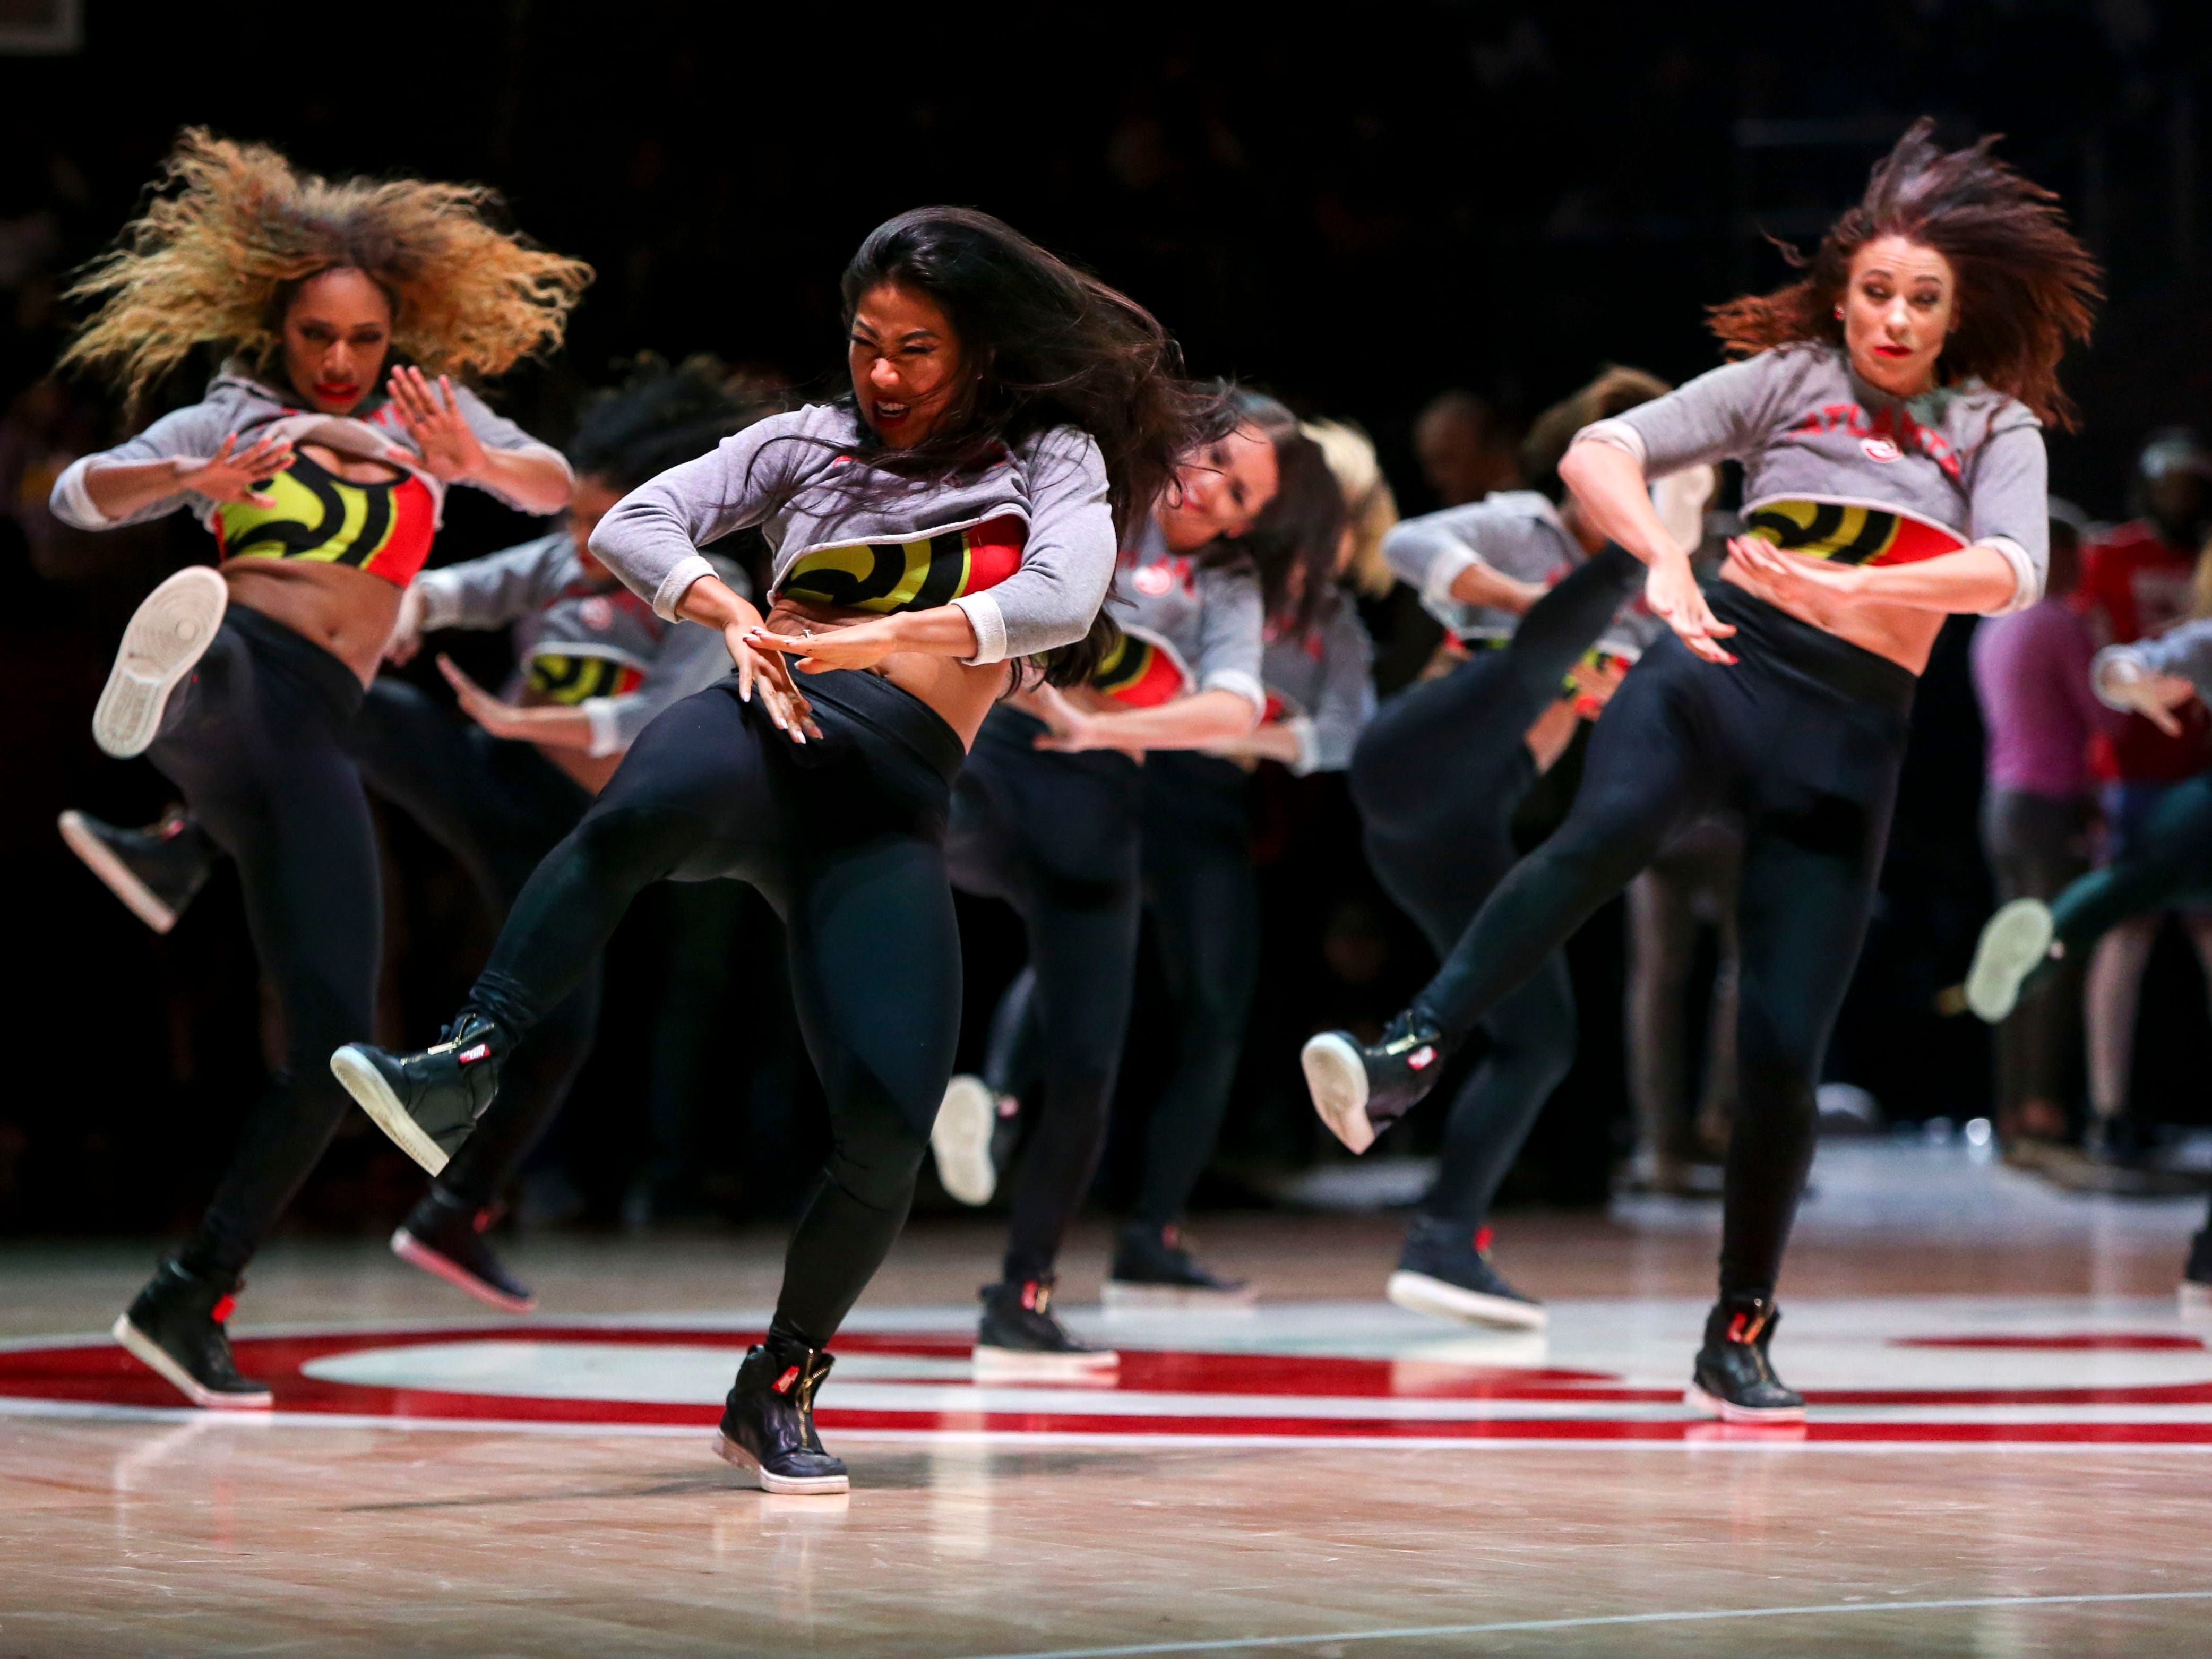 Feb. 12: Atlanta Hawks cheerleaders perform during the game against the Los Angeles Lakers at State Farm Arena.